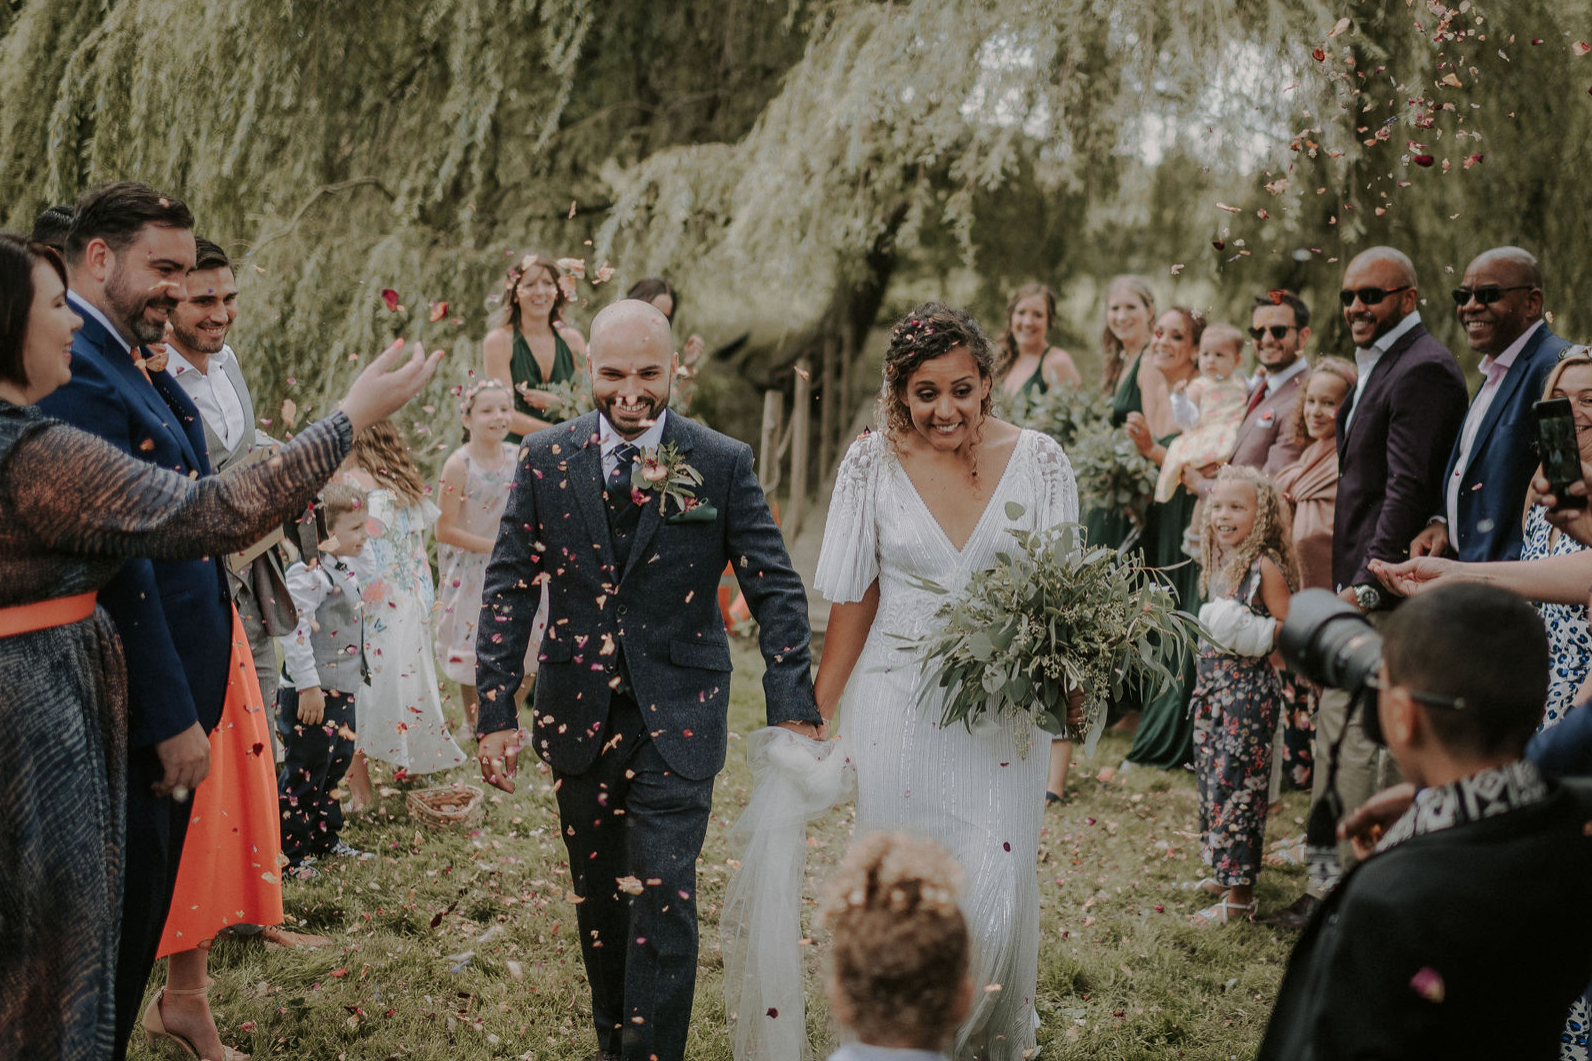 Nikita & Neezam's Wilderness Wedding at Happy Valley, Summer 2019